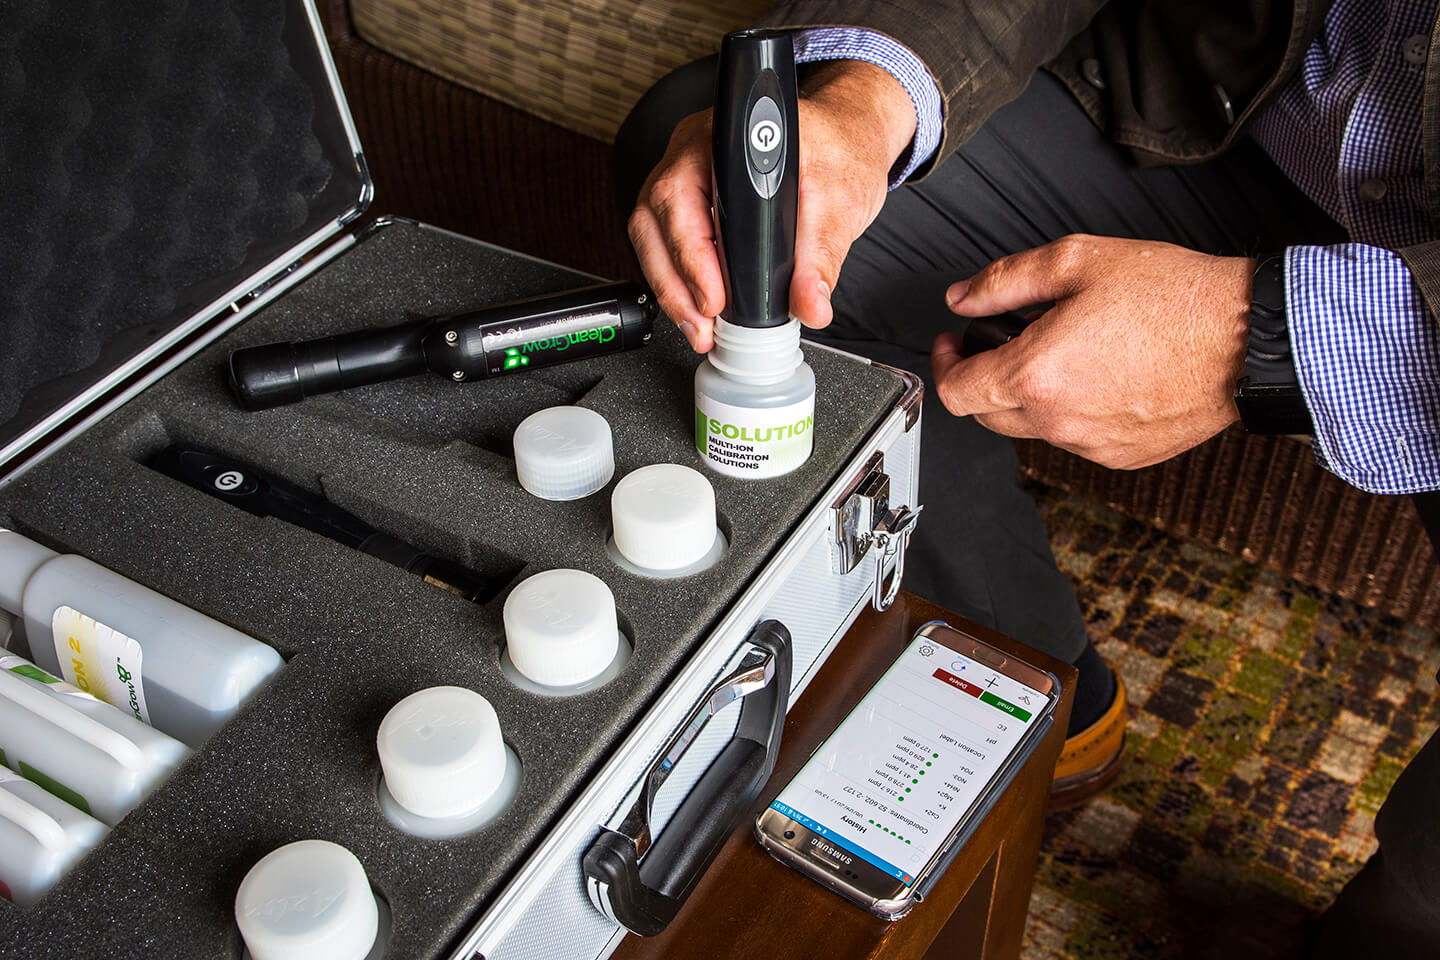 Person using tool to place cylinders into a briefcase.